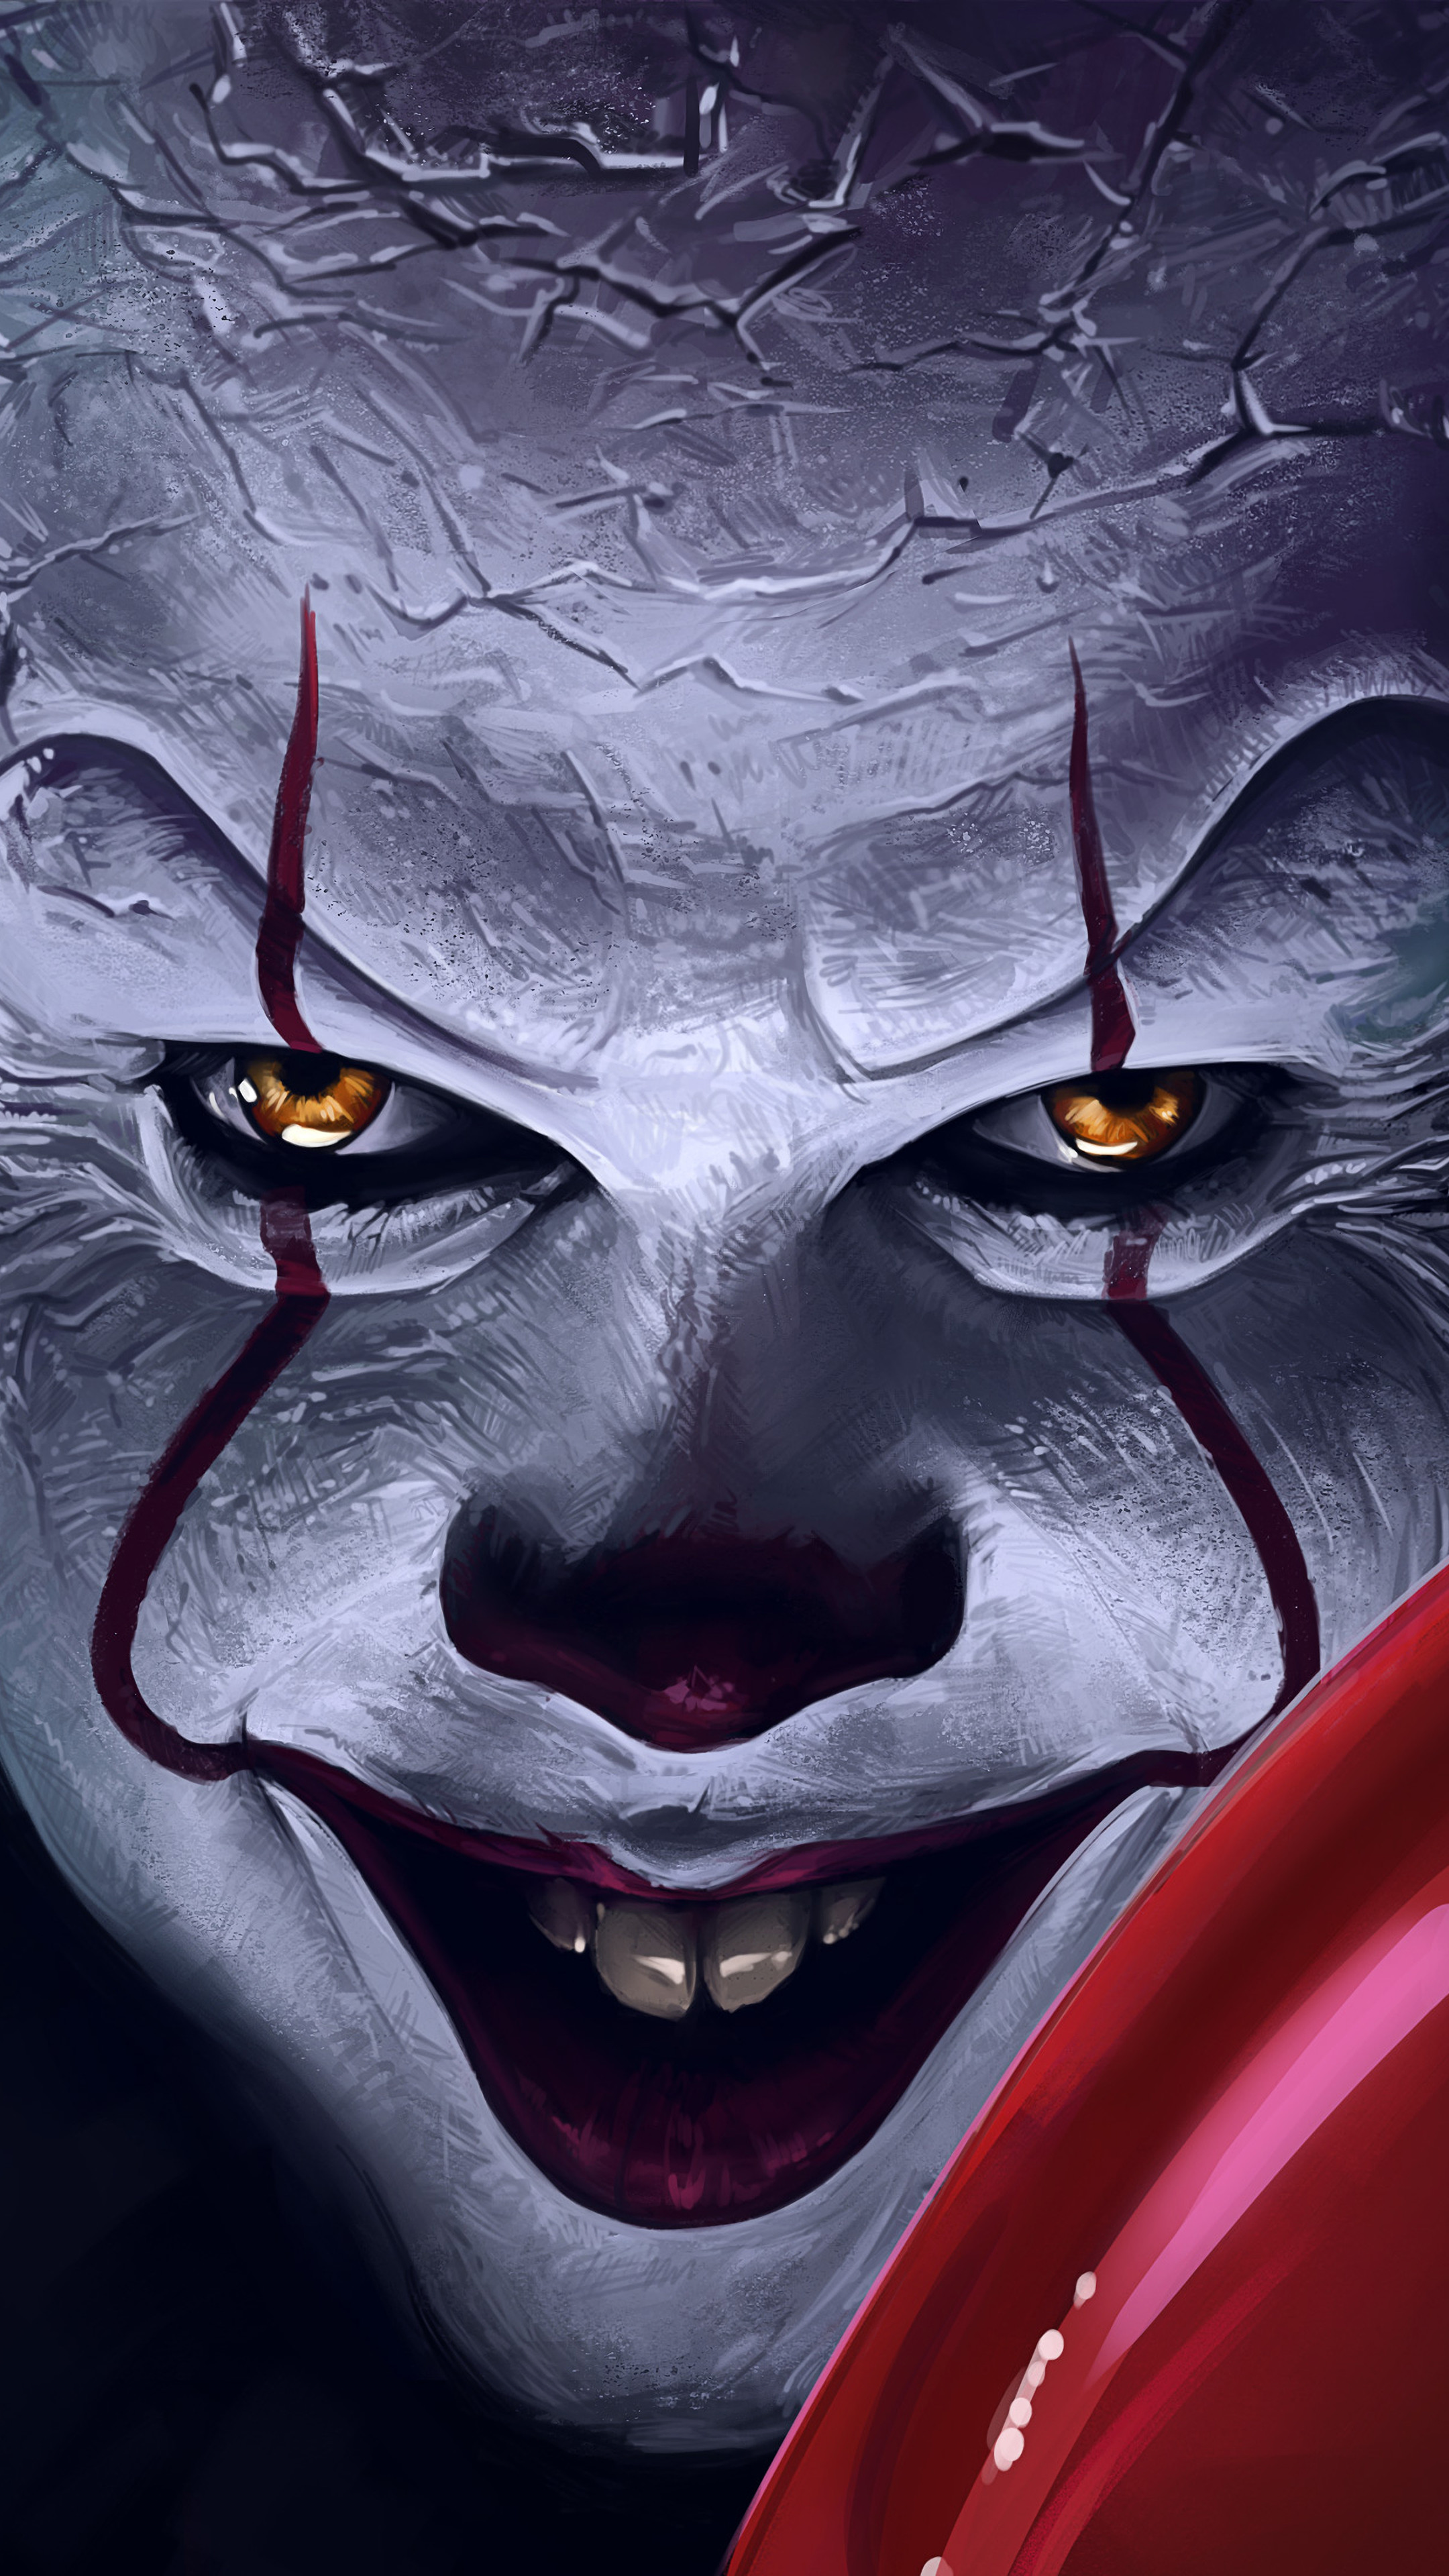 Free download It Chapter 2 Pennywise Balloons 8K Wallpaper ...